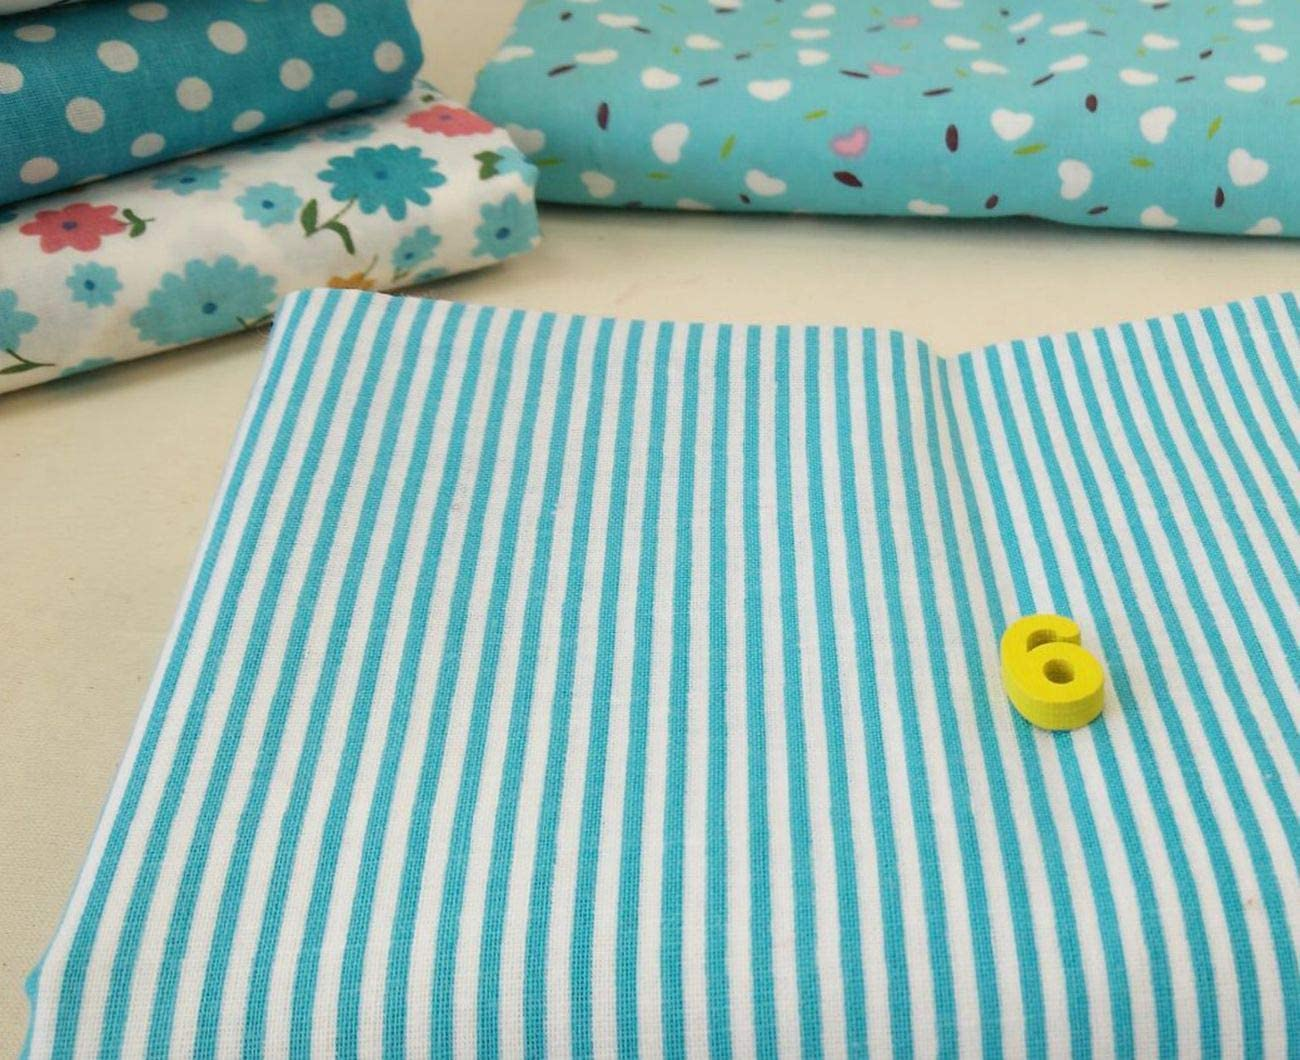 MoonyLI 7 Pieces Cotton Fabric for Quilting Patchwork Cotton Craft Fabric Cotton Fabric Patchwork Fabrics Fabric Packets Printed Fabric Blue